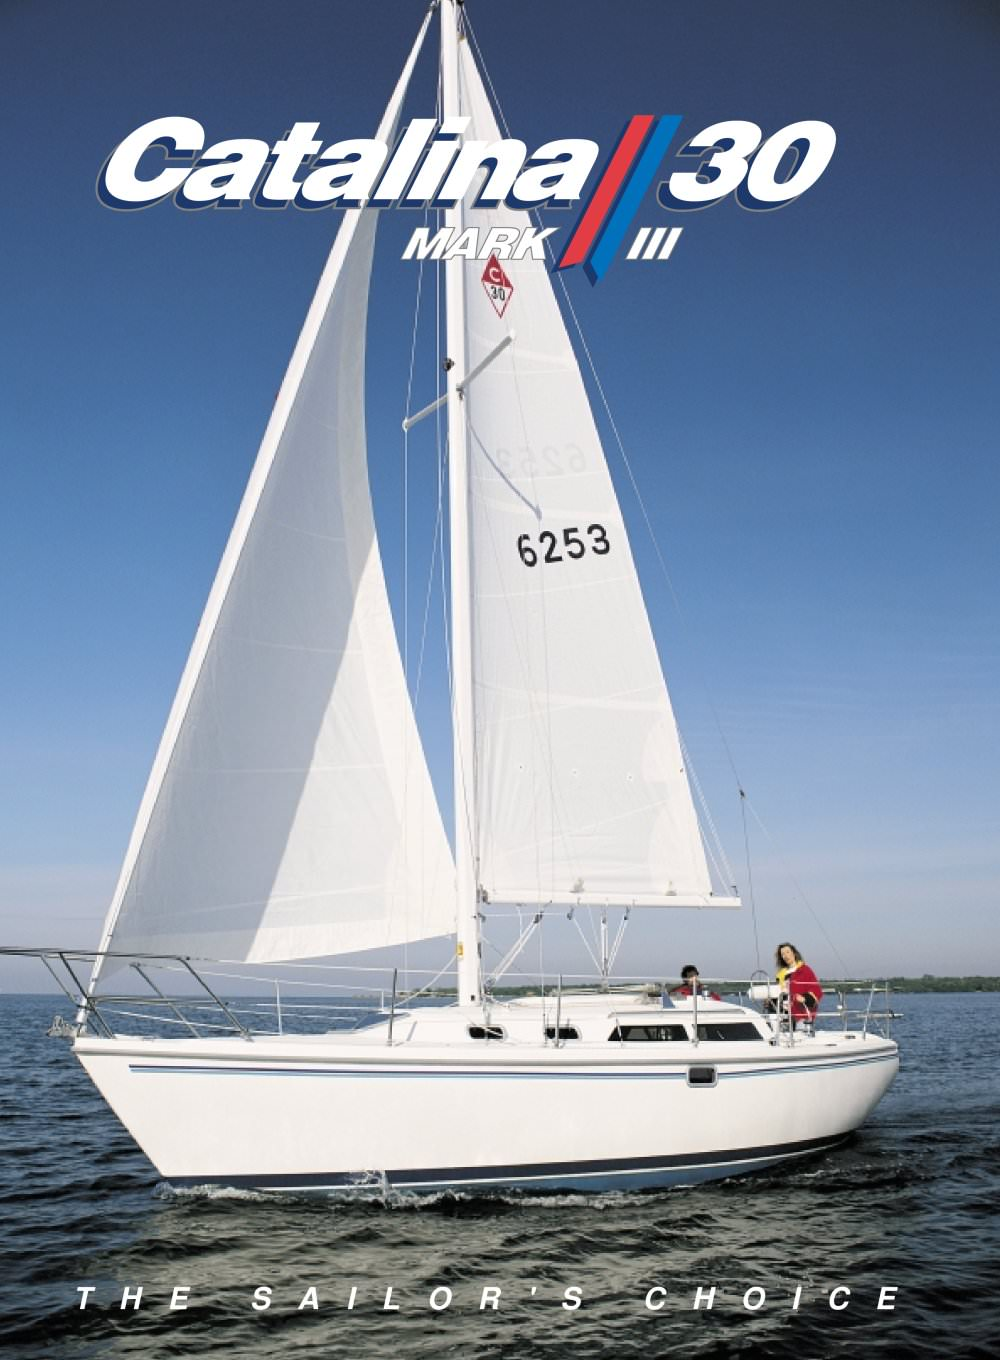 Catalina 30 mkII - Catalina Yachts. See other catalogues for Catalina Yachts